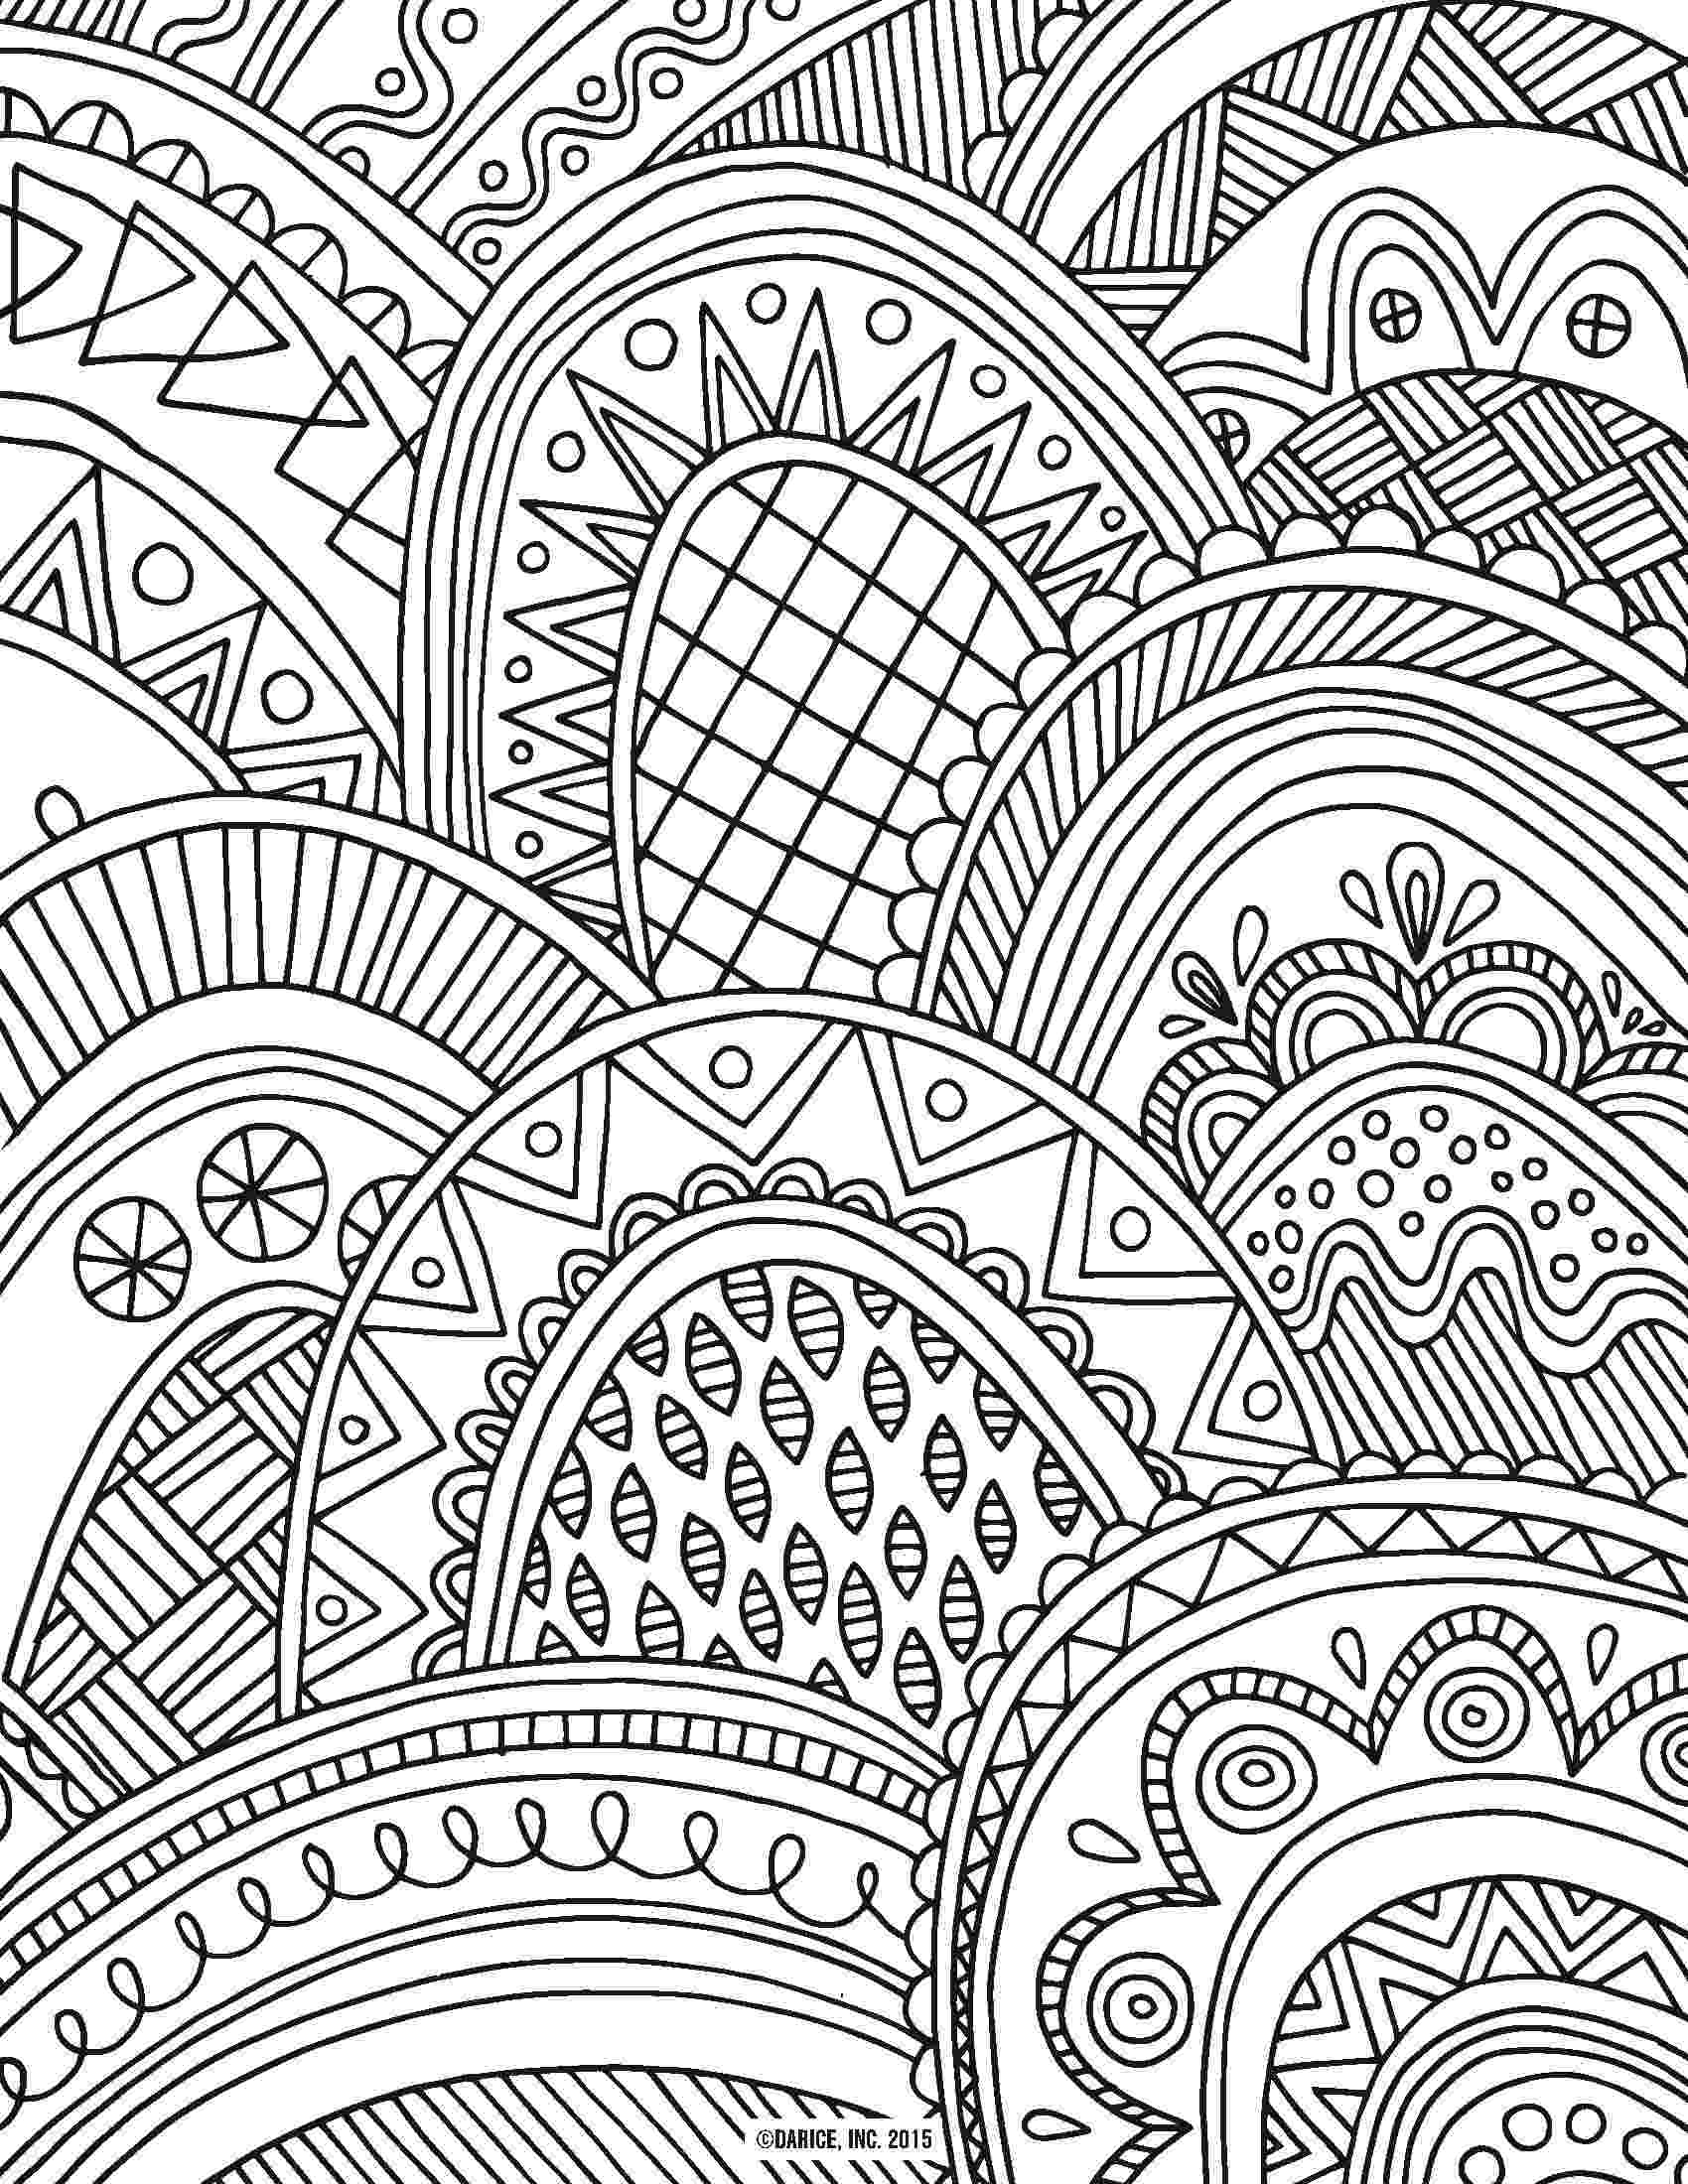 coloring book for adults online 37 best adults coloring pages updated 2018 adults online coloring book for